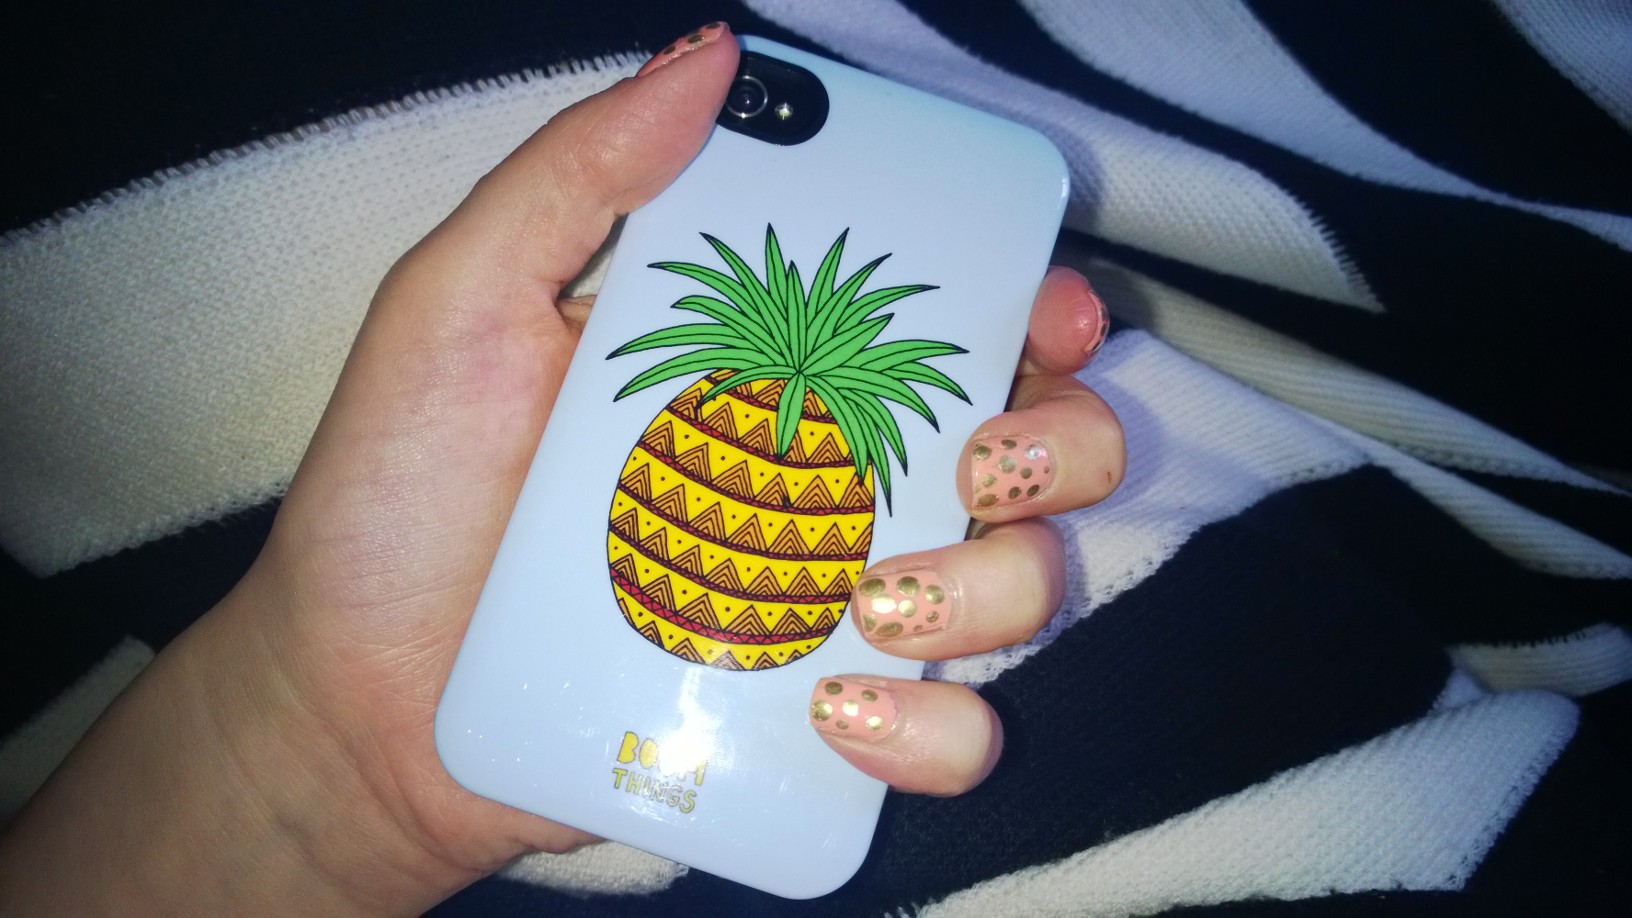 Pineapples and polka dots. Two of my favourite things!